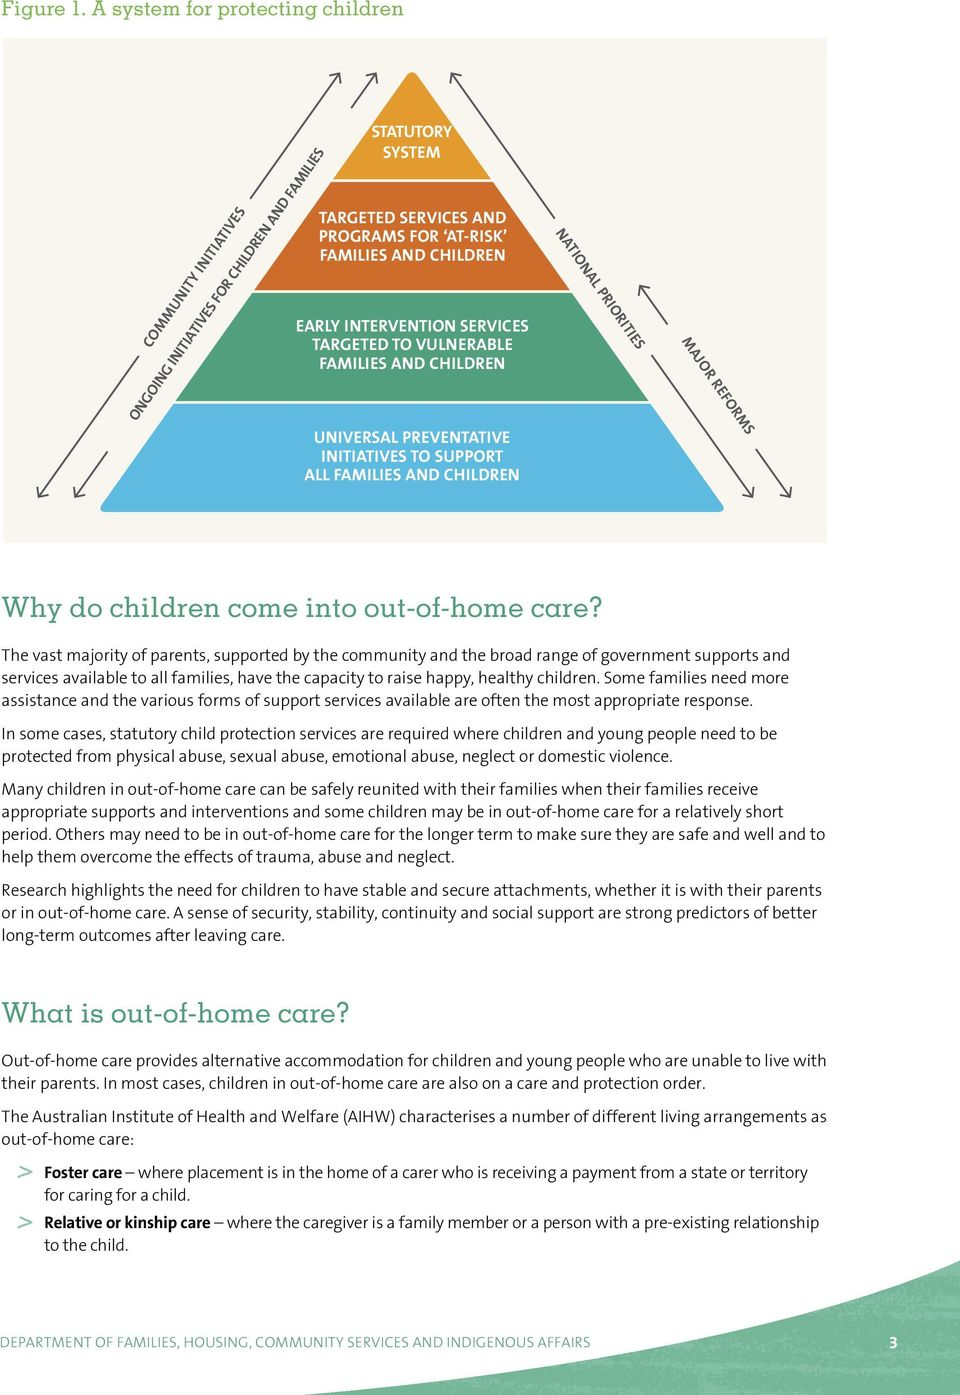 INTERVENTION SERVICES TARGETED TO VULNERABLE FAMILIES AND CHILDREN UNIVERSAL PREVENTATIVE INITIATIVES TO SUPPORT ALL FAMILIES AND CHILDREN NATIONAL PRIORITIES MAJOR REFORMS Why do children come into